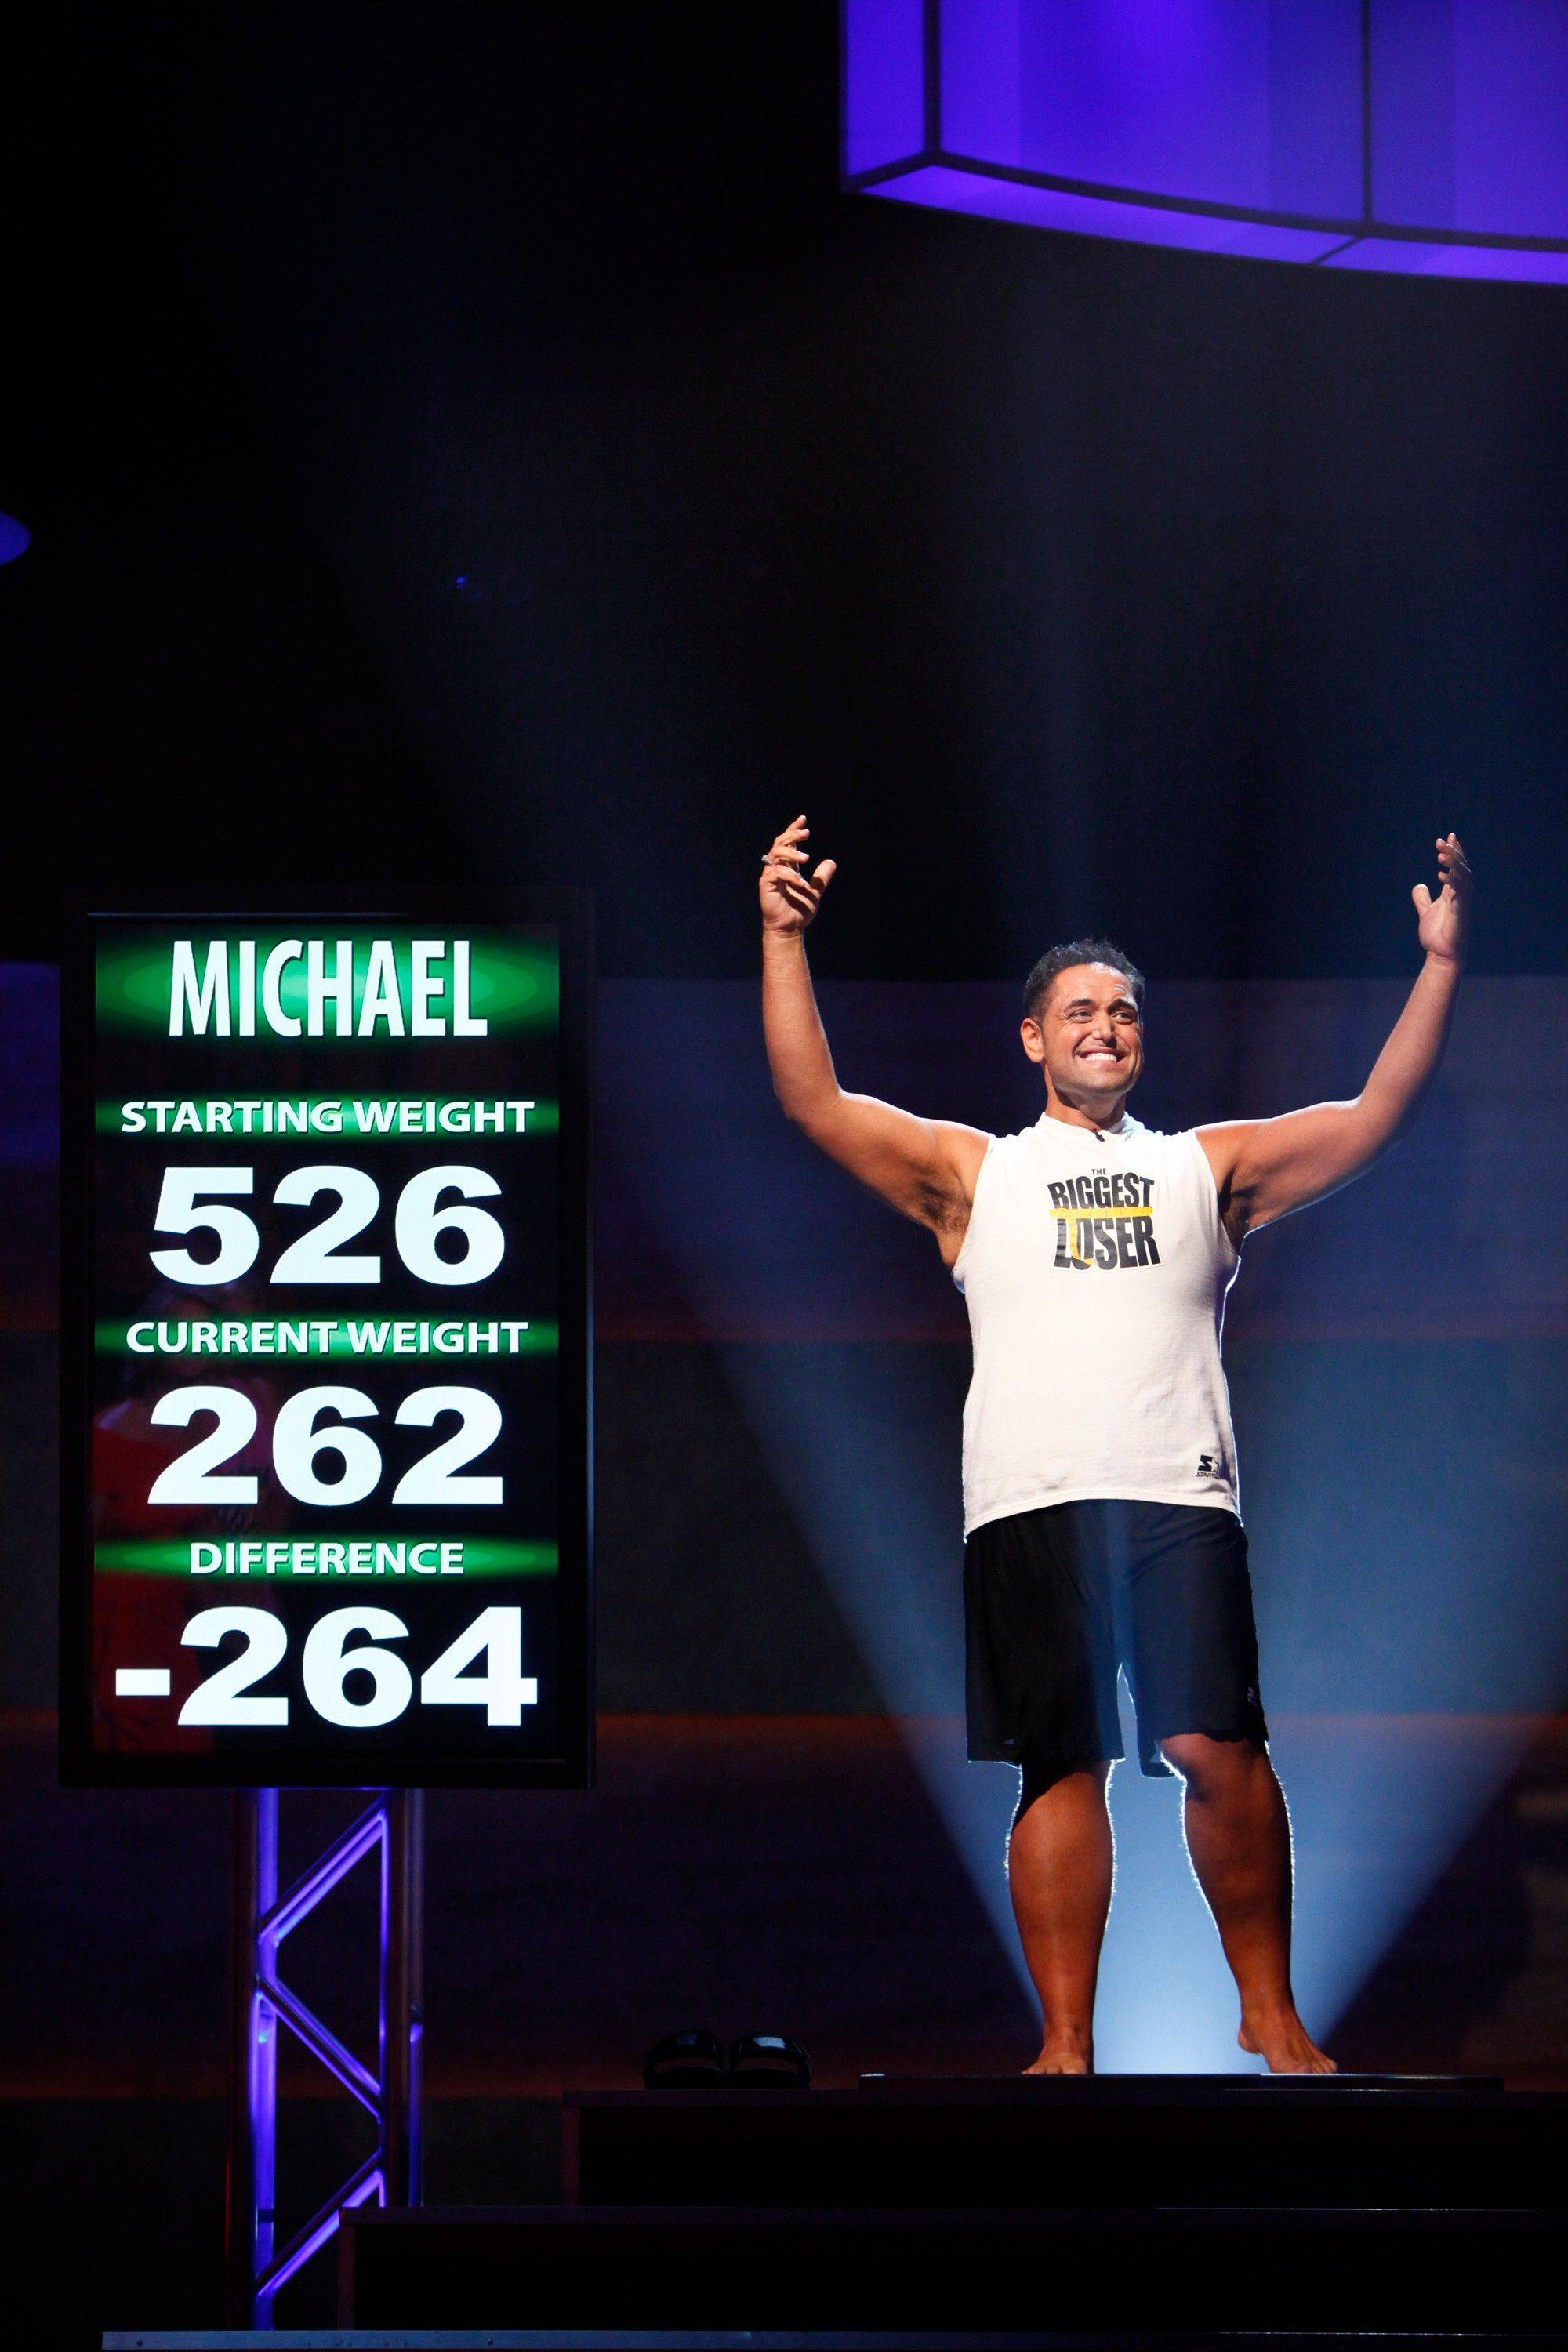 Biggest Loser winner Michael Ventrella of Bartlett lost half his 526-pound starting weight.